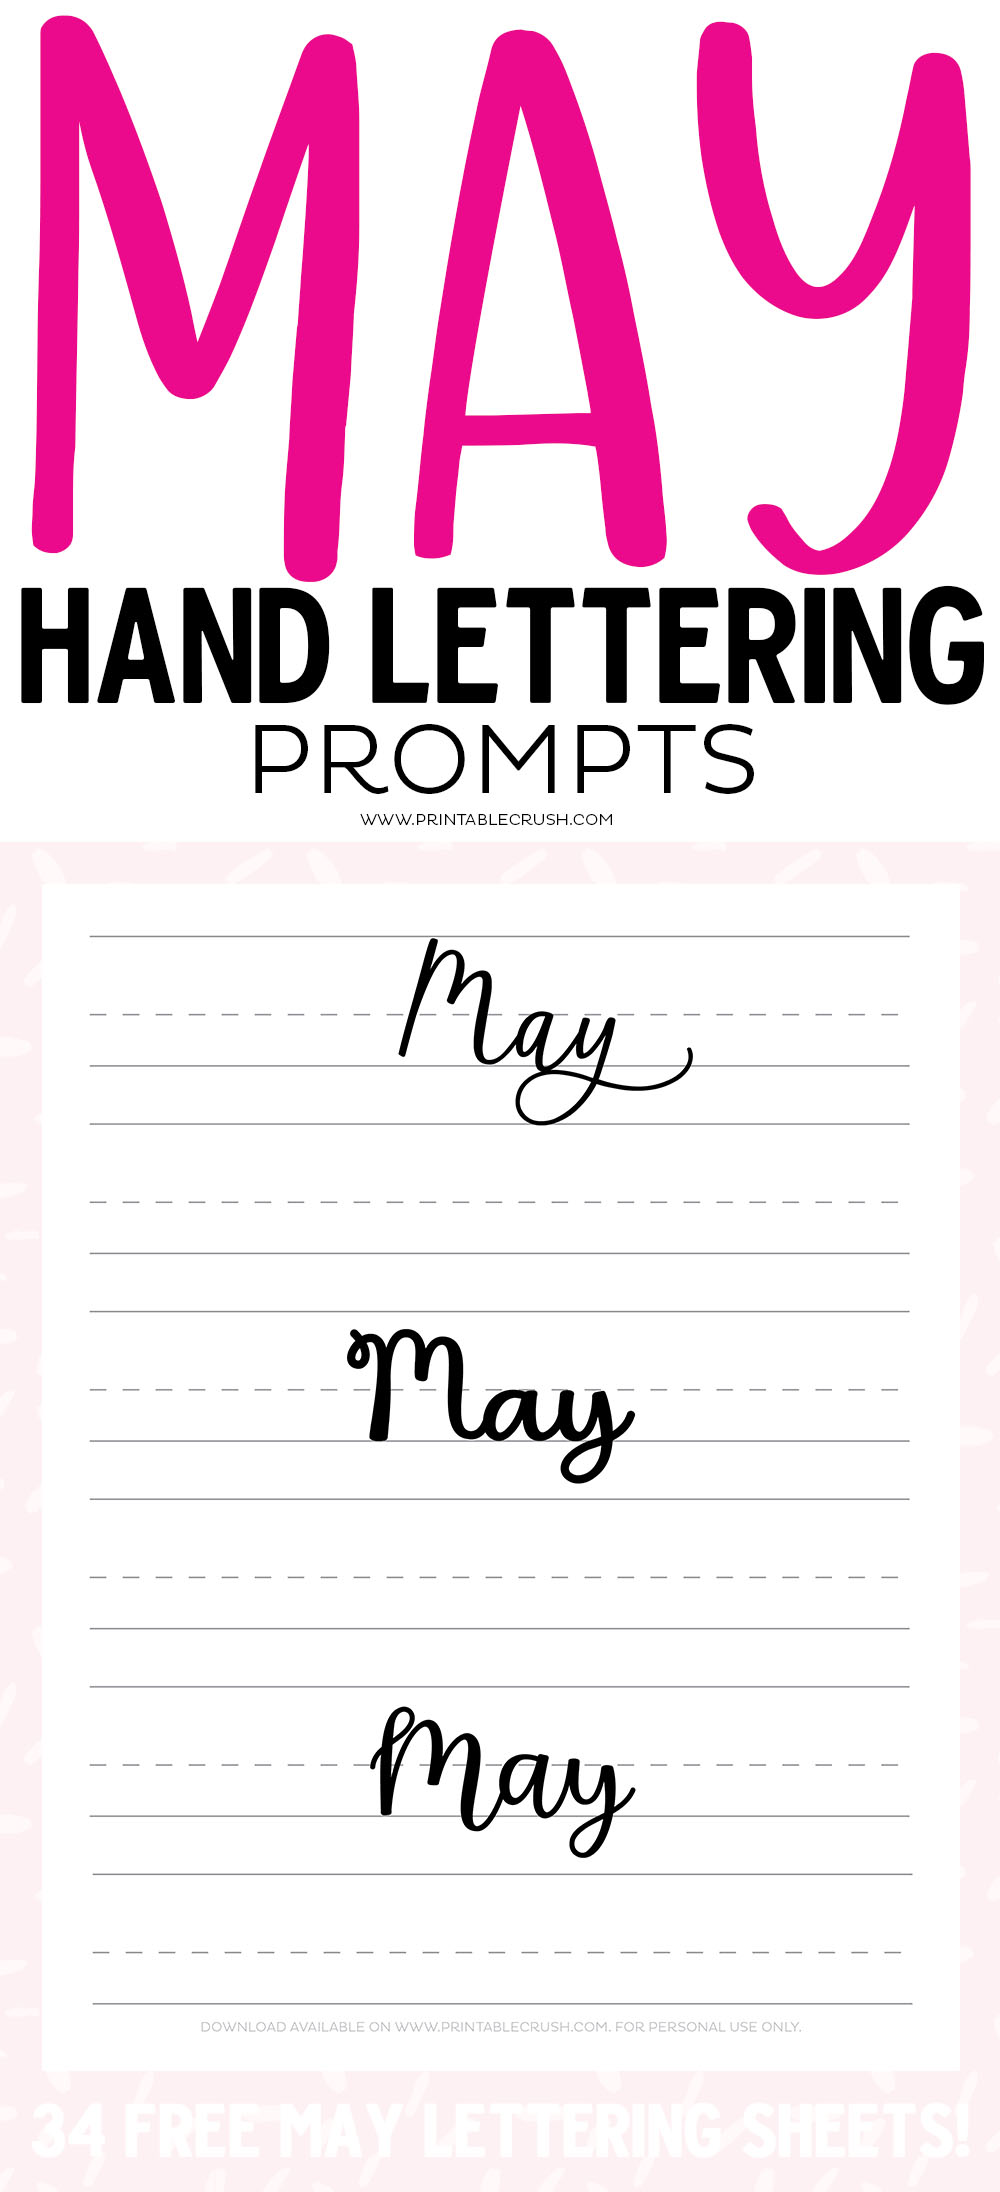 Get 31 MAY Hand Lettering Prompts plus 34 FREE practice sheets in this blog series to improve your hand lettering skills!